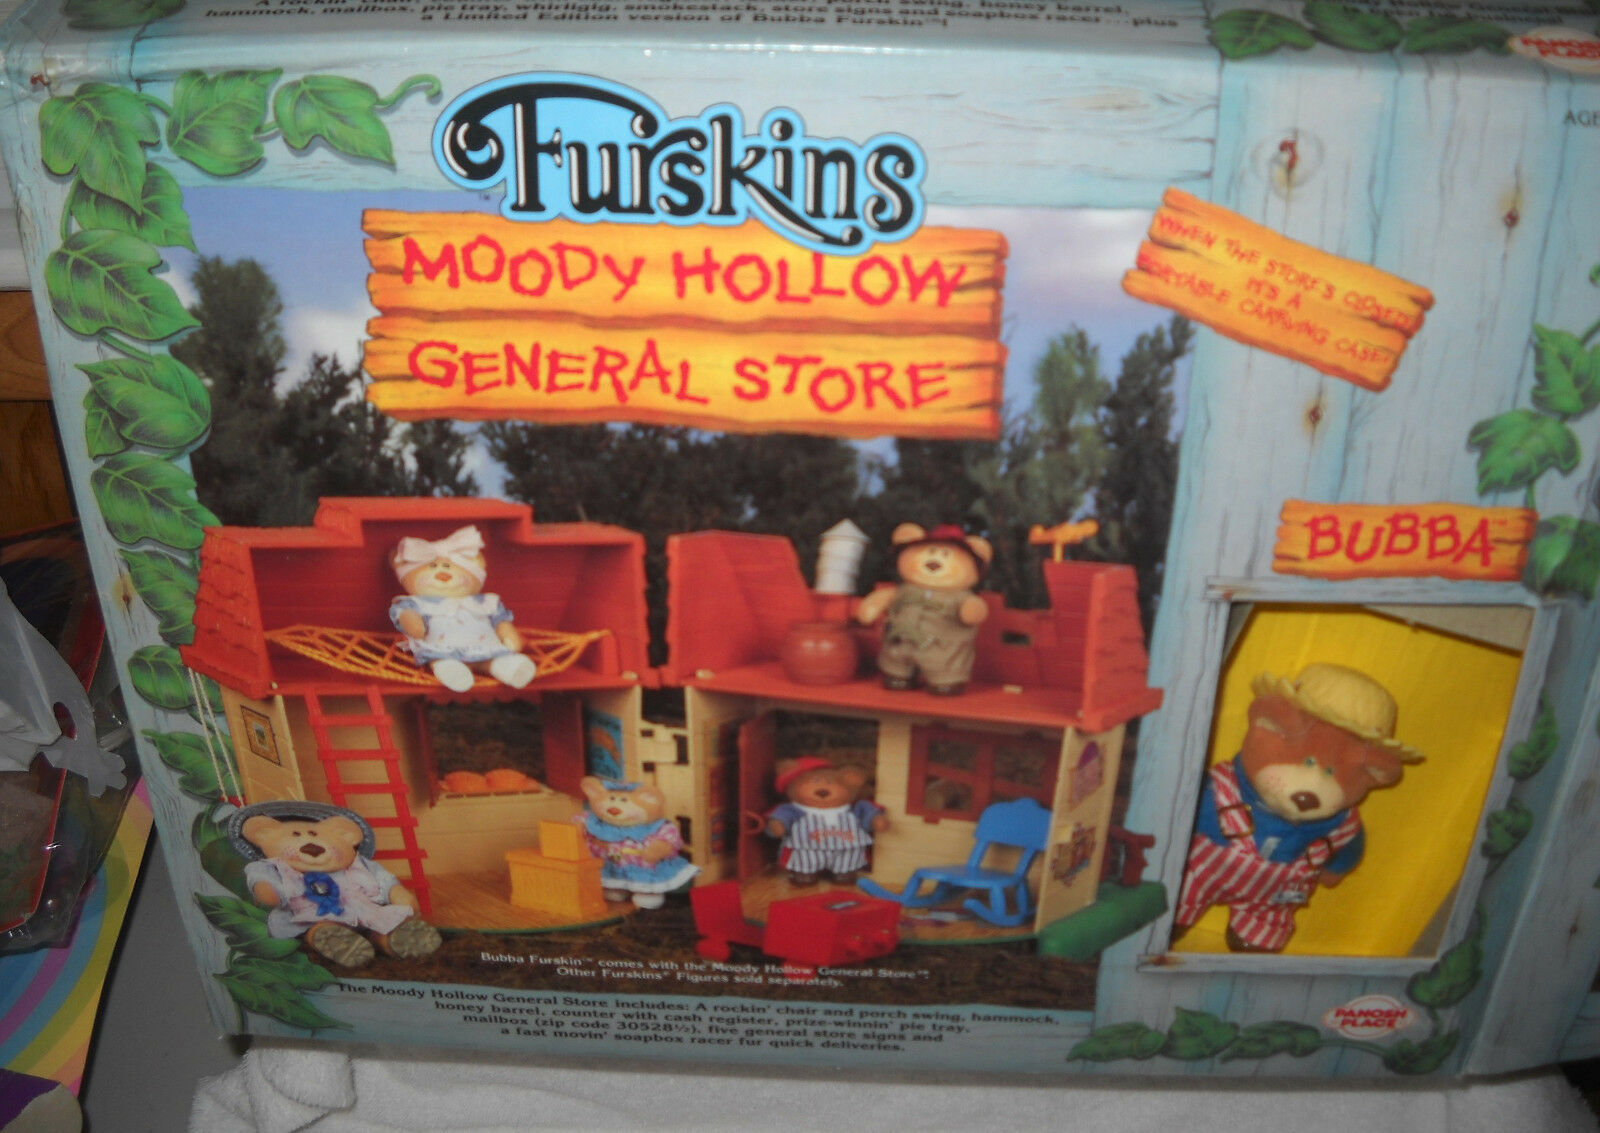 7522 Panosh Place Furskins Moody Hollow General Store Bubba Plus 13 Bears